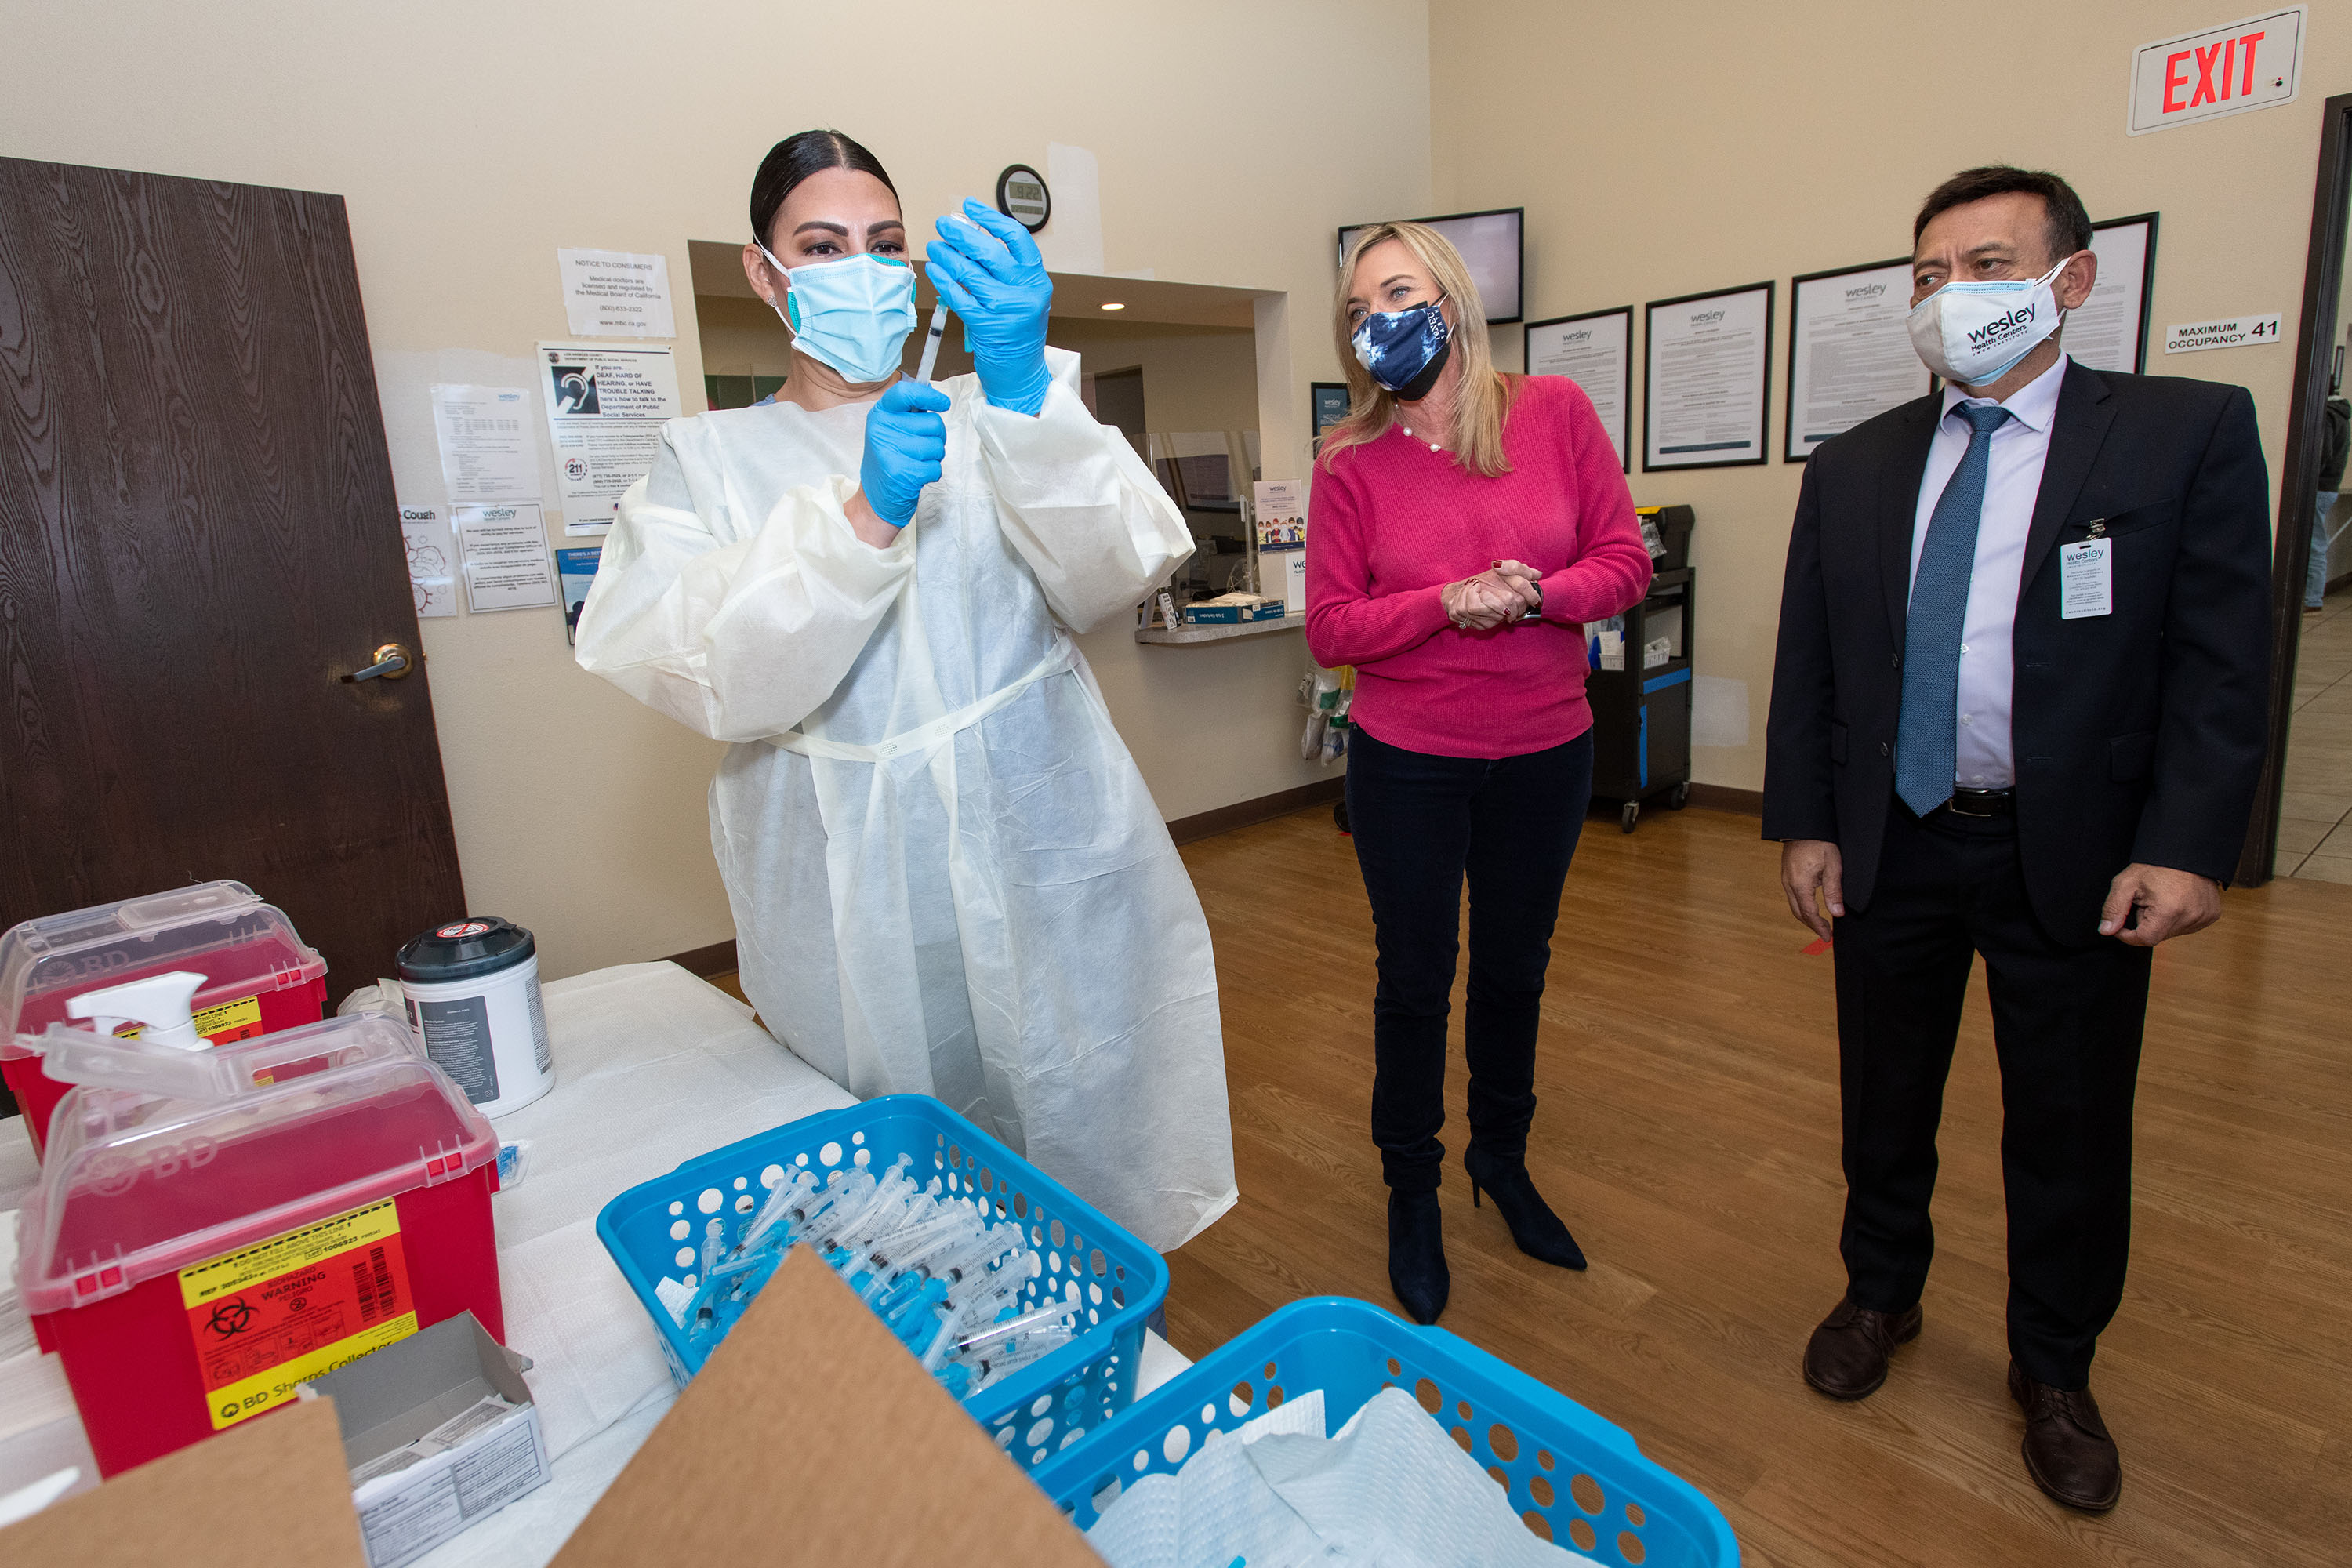 District 5 – Supervisor Kathryn Barger<br> <b>Feb. 27, 2021 - Wesley Health COVID-19 vaccine clinic in Lancaster</b><br> <i>Photo by Bryan Chan / Board of Supervisors</i>